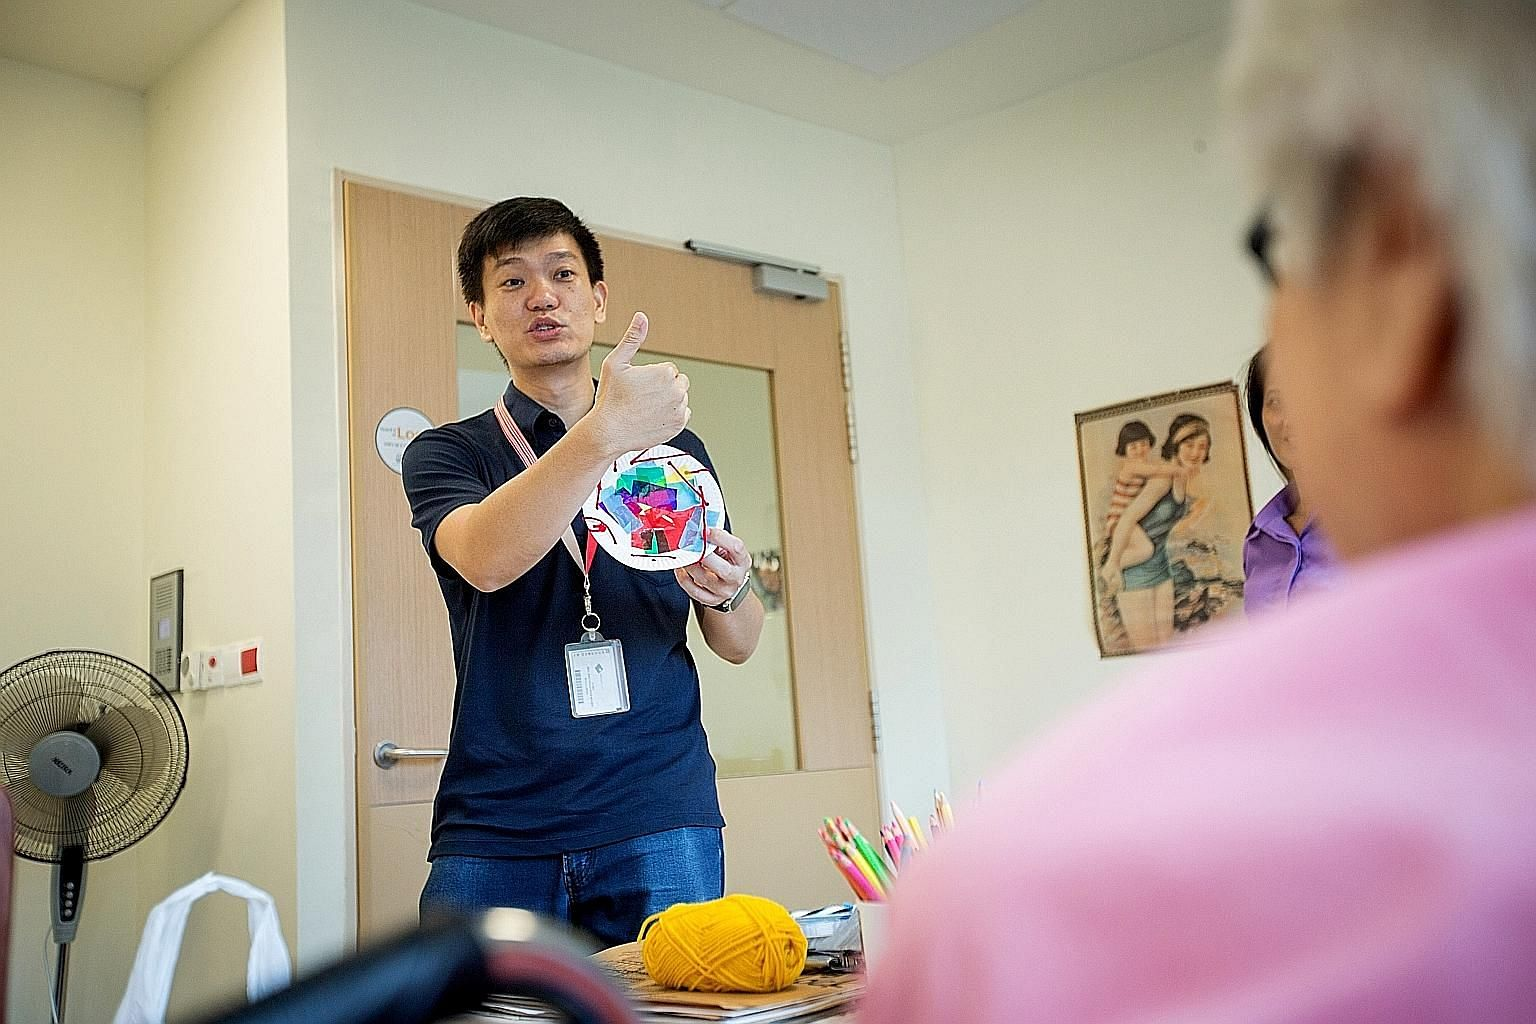 Art therapist Lee Sze-Chin during a session at Jurong Community Hospital. Instead of holding sessions on different premises, he now conducts his art therapy sessions at just one organisation - St Luke's Hospital - and does some of these sessions thro